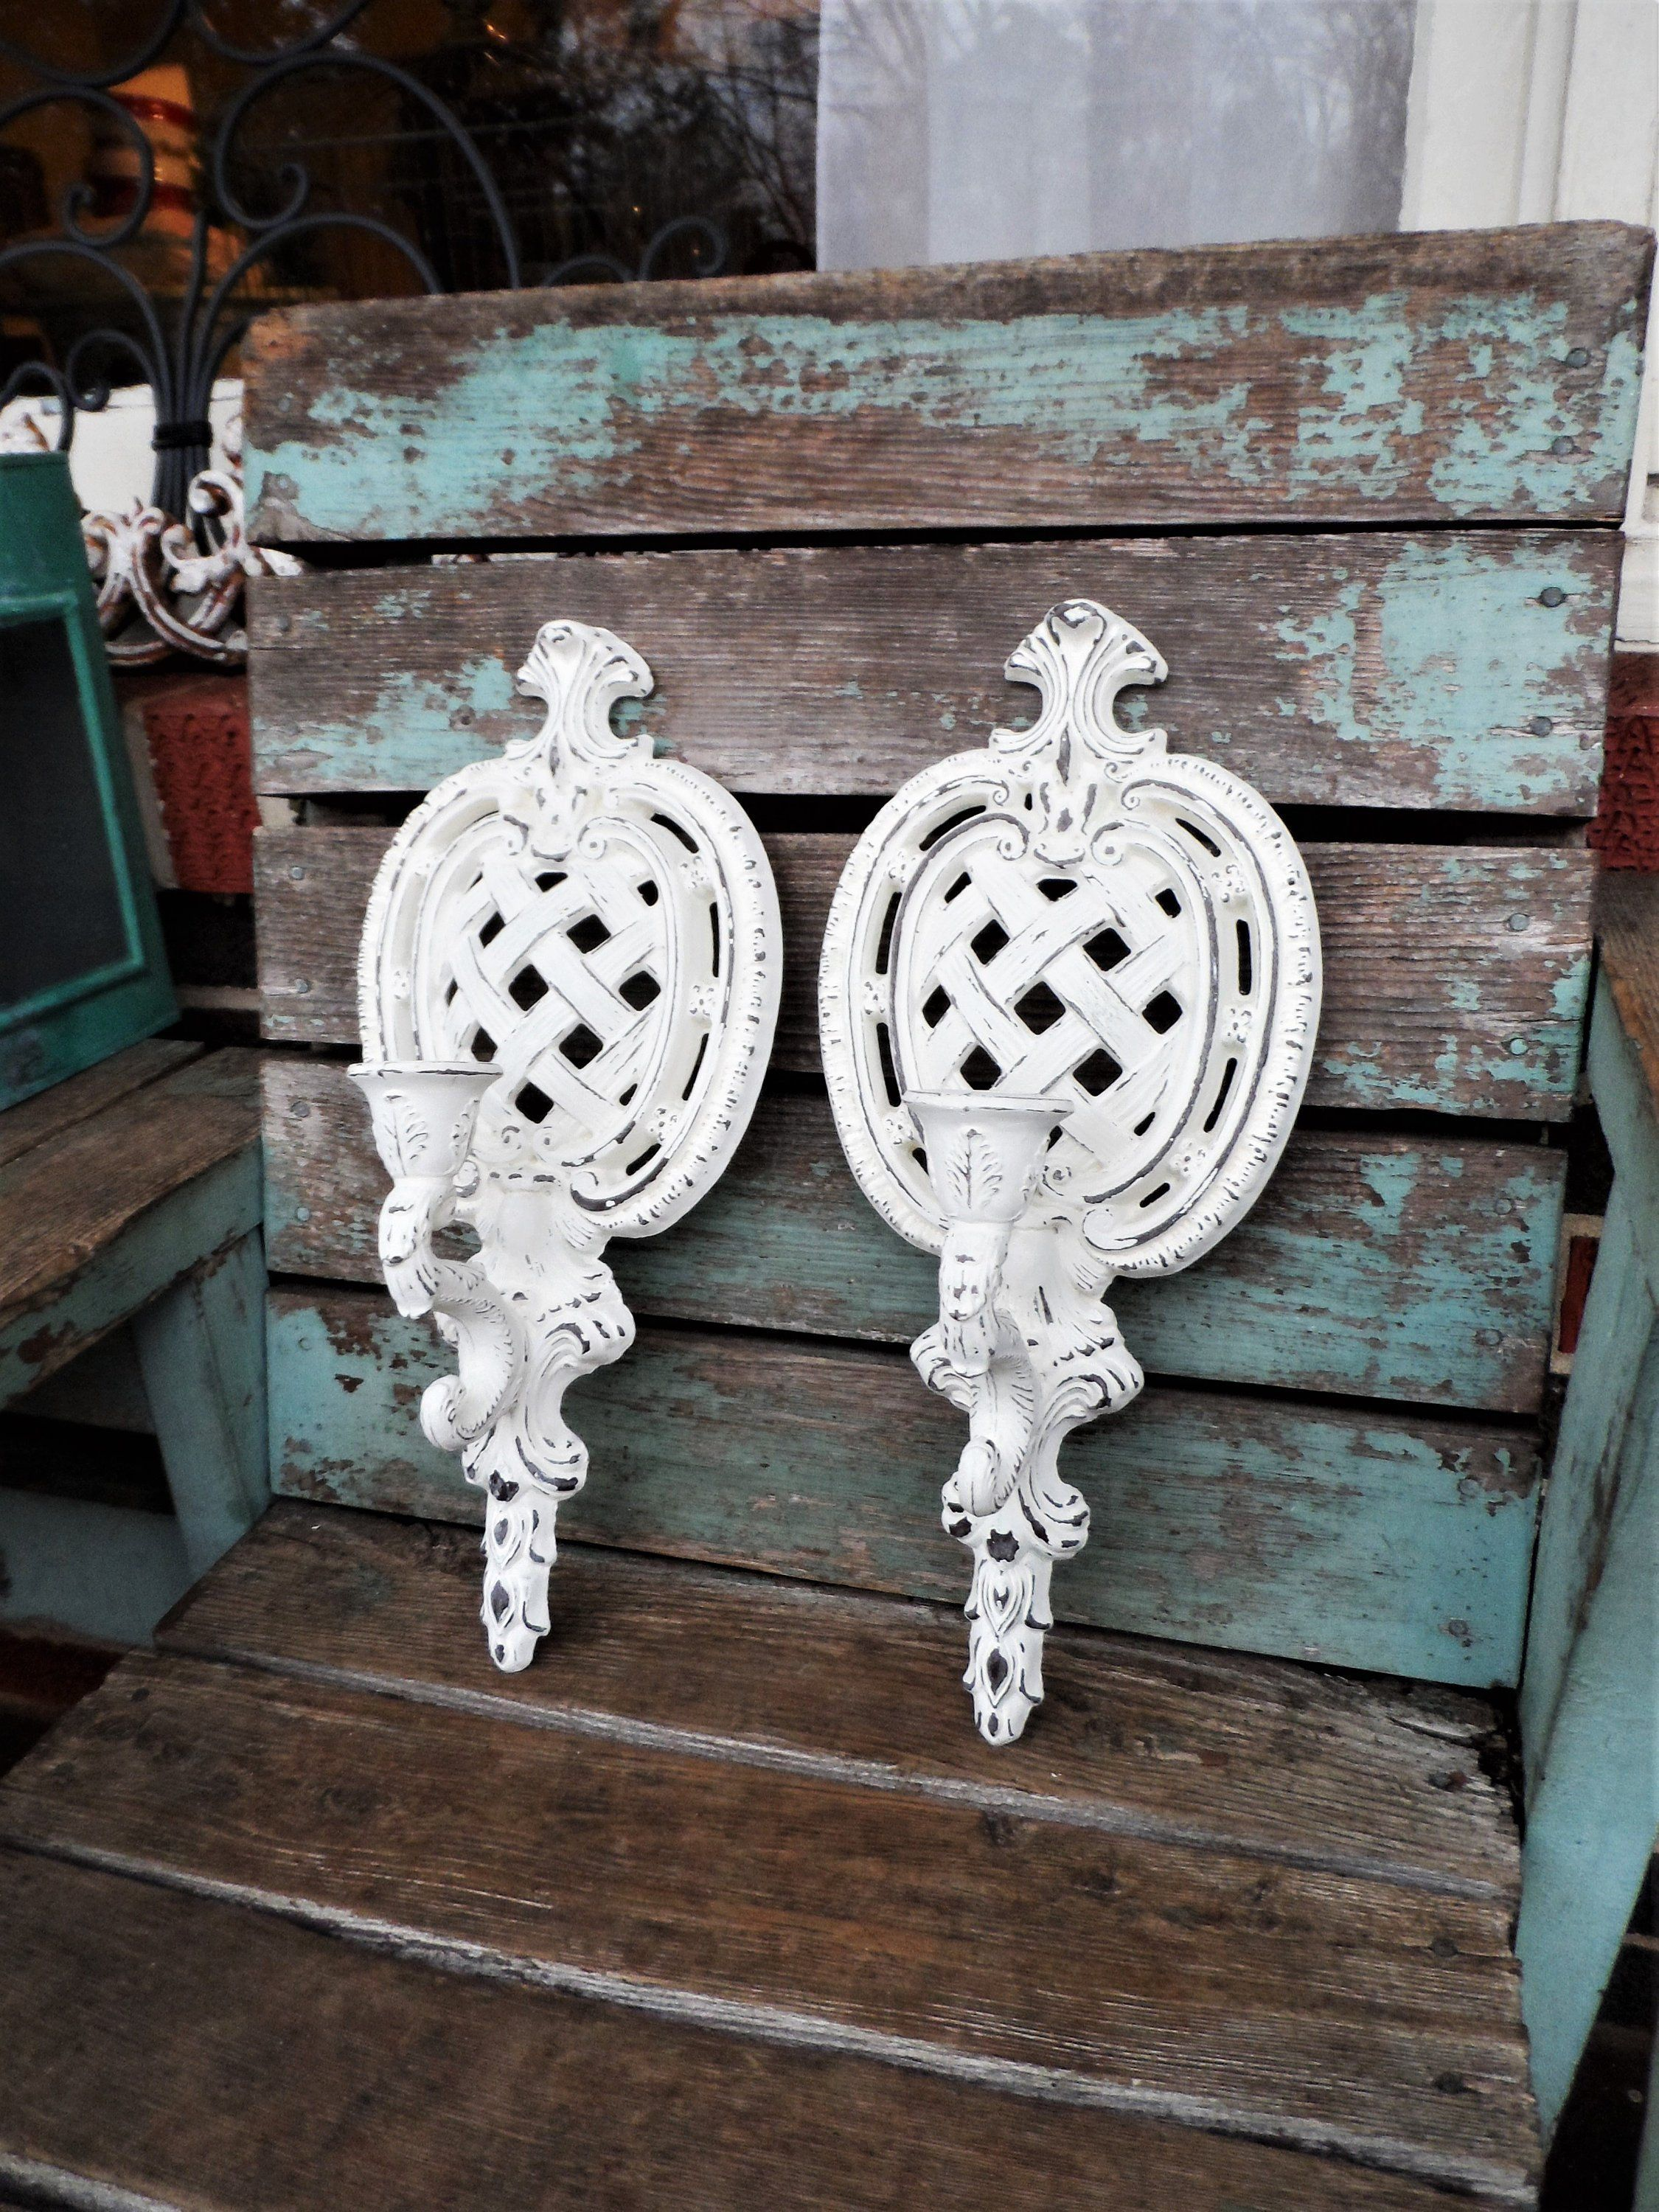 Vintage Shabby Chic Candle Holders Candelabra Wall Sconce Set Etsy Shabby Chic Candle Shabby Chic Candle Holders Distressed Candle Holders